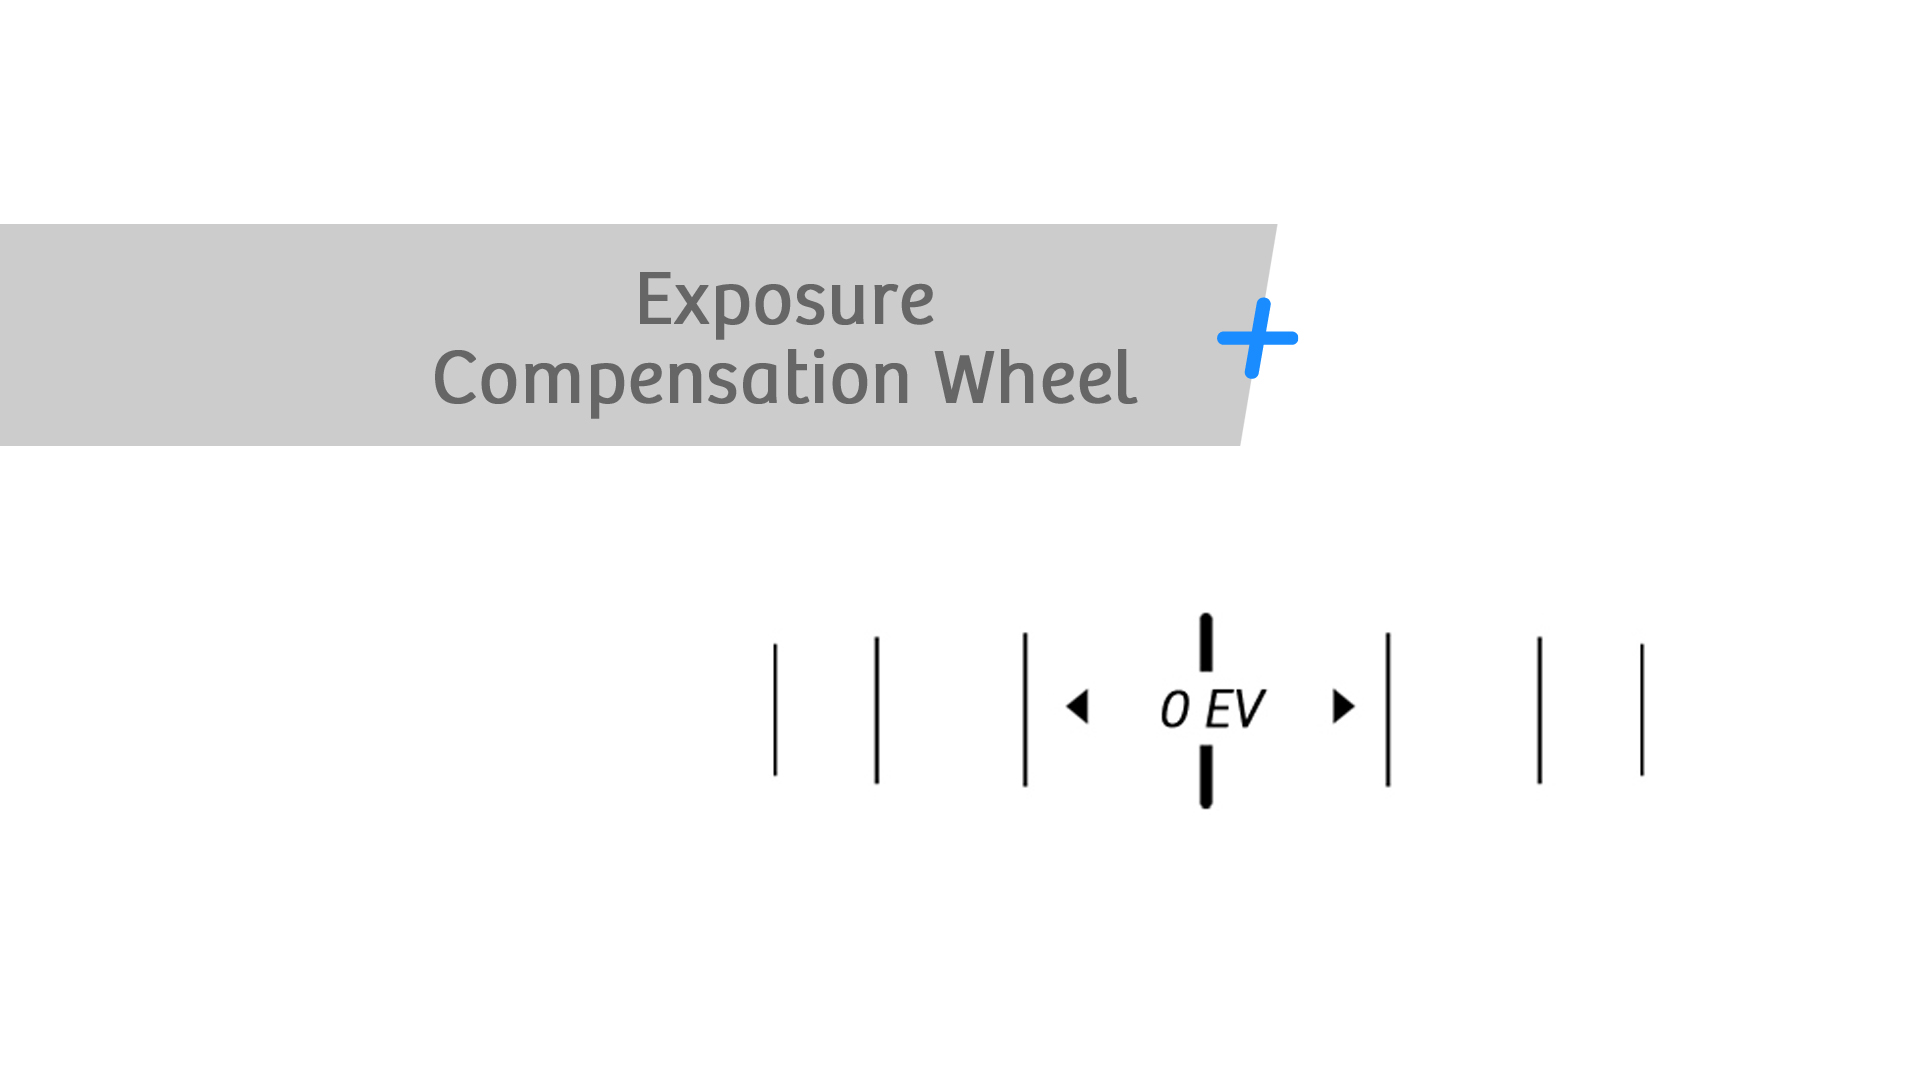 Exposure Compensation Wheel